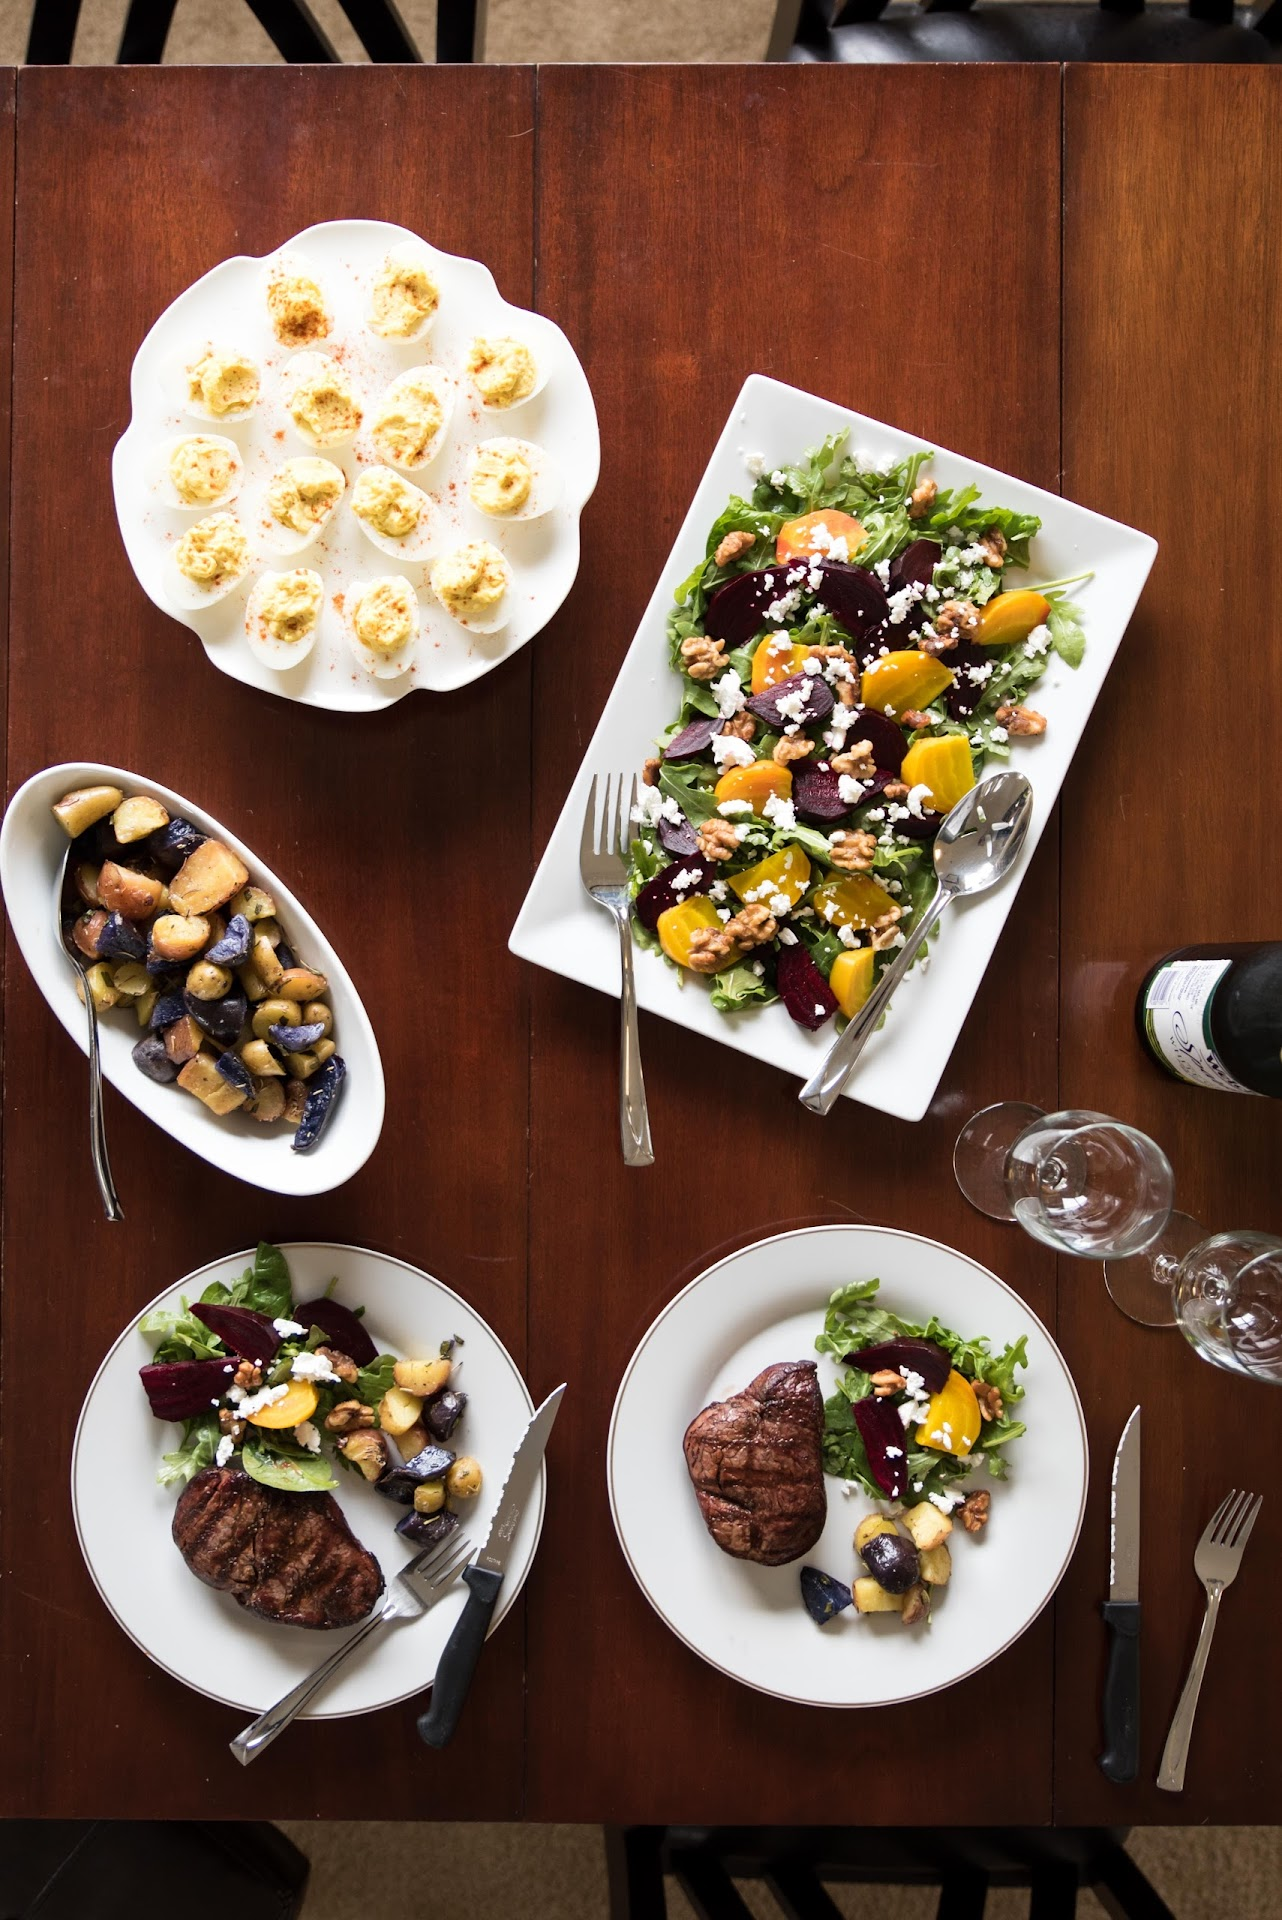 dinner party recipe ideas, beet salad recipe, beet recipe, dinner party recipe ideas, adult party food ideas, goat cheese, colorful salad, pretty salad, summer salad, spring salad, easter meal